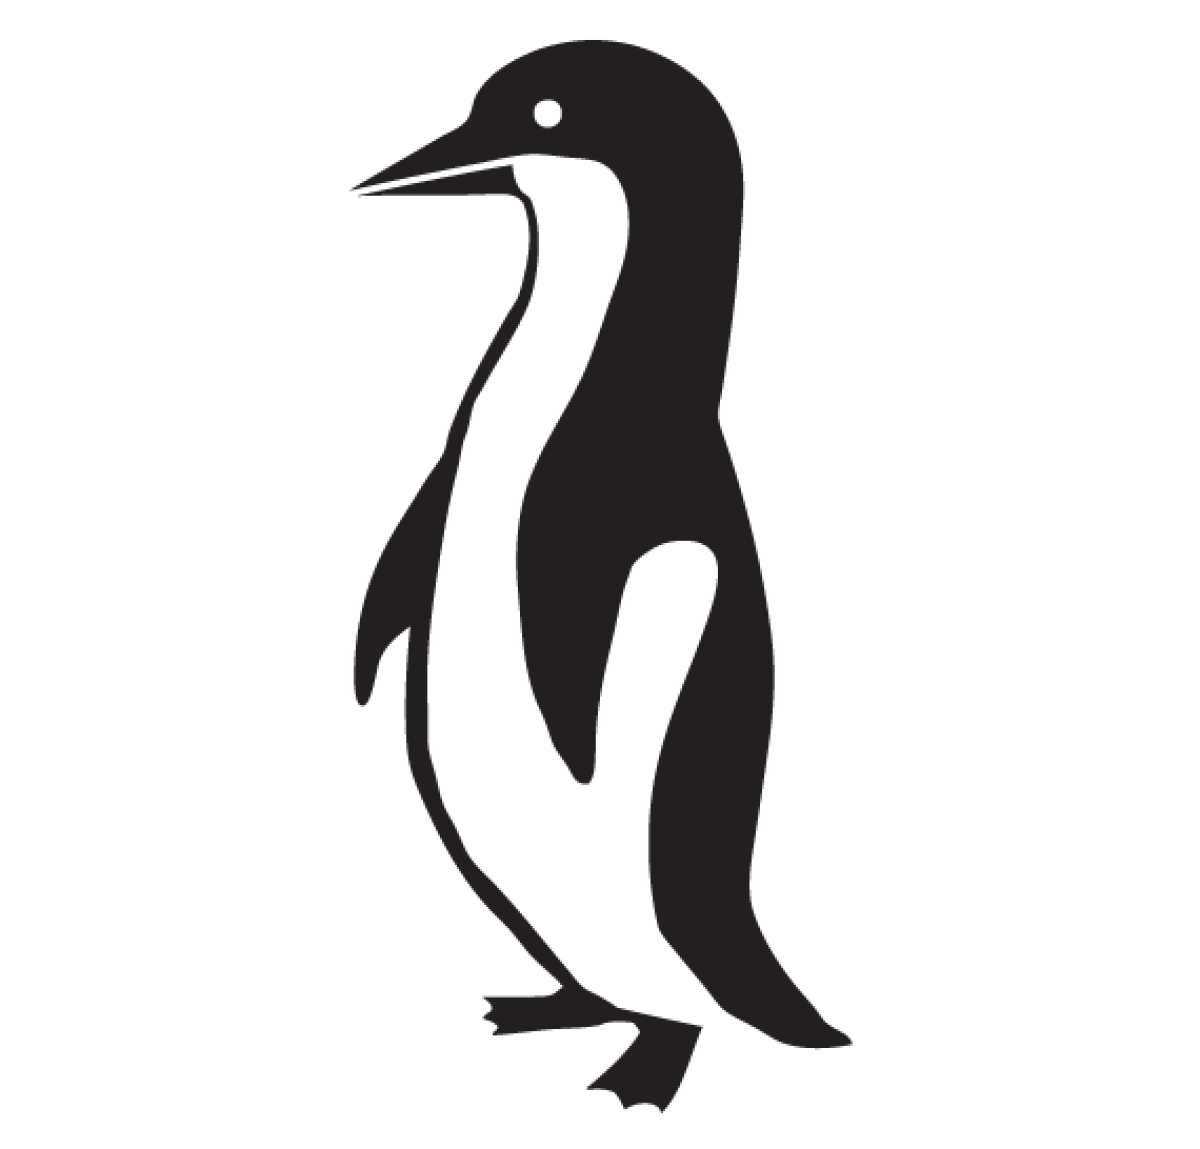 Penguin. Sticker hackerstickers